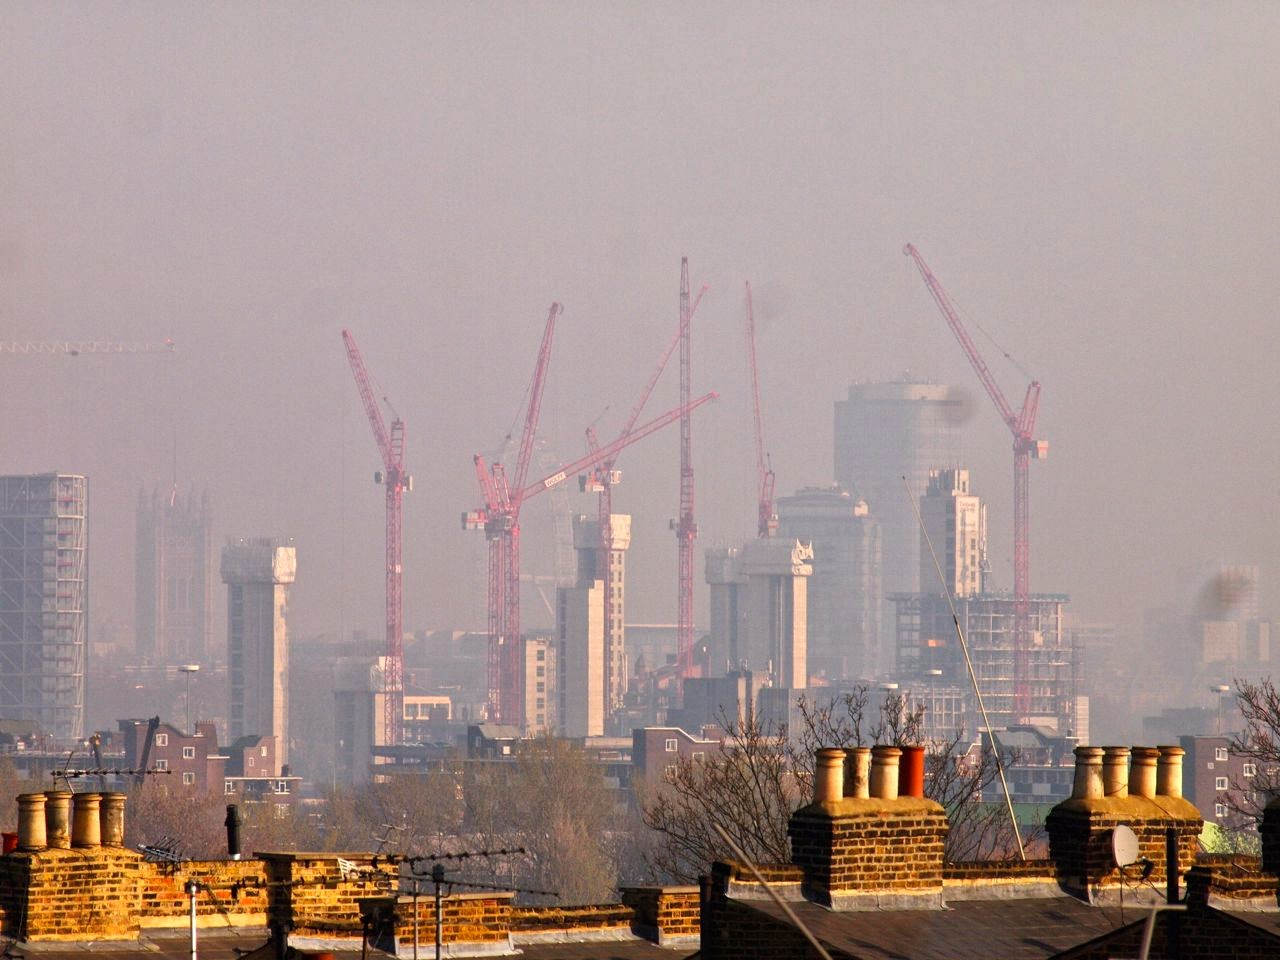 Nine Elms - for now, it is just the cranes and the core lifts hafts. But soon it will be nothing but shiny glass blocks - and our lovely view over the cities of London, ruined for ever. Bastards!!!